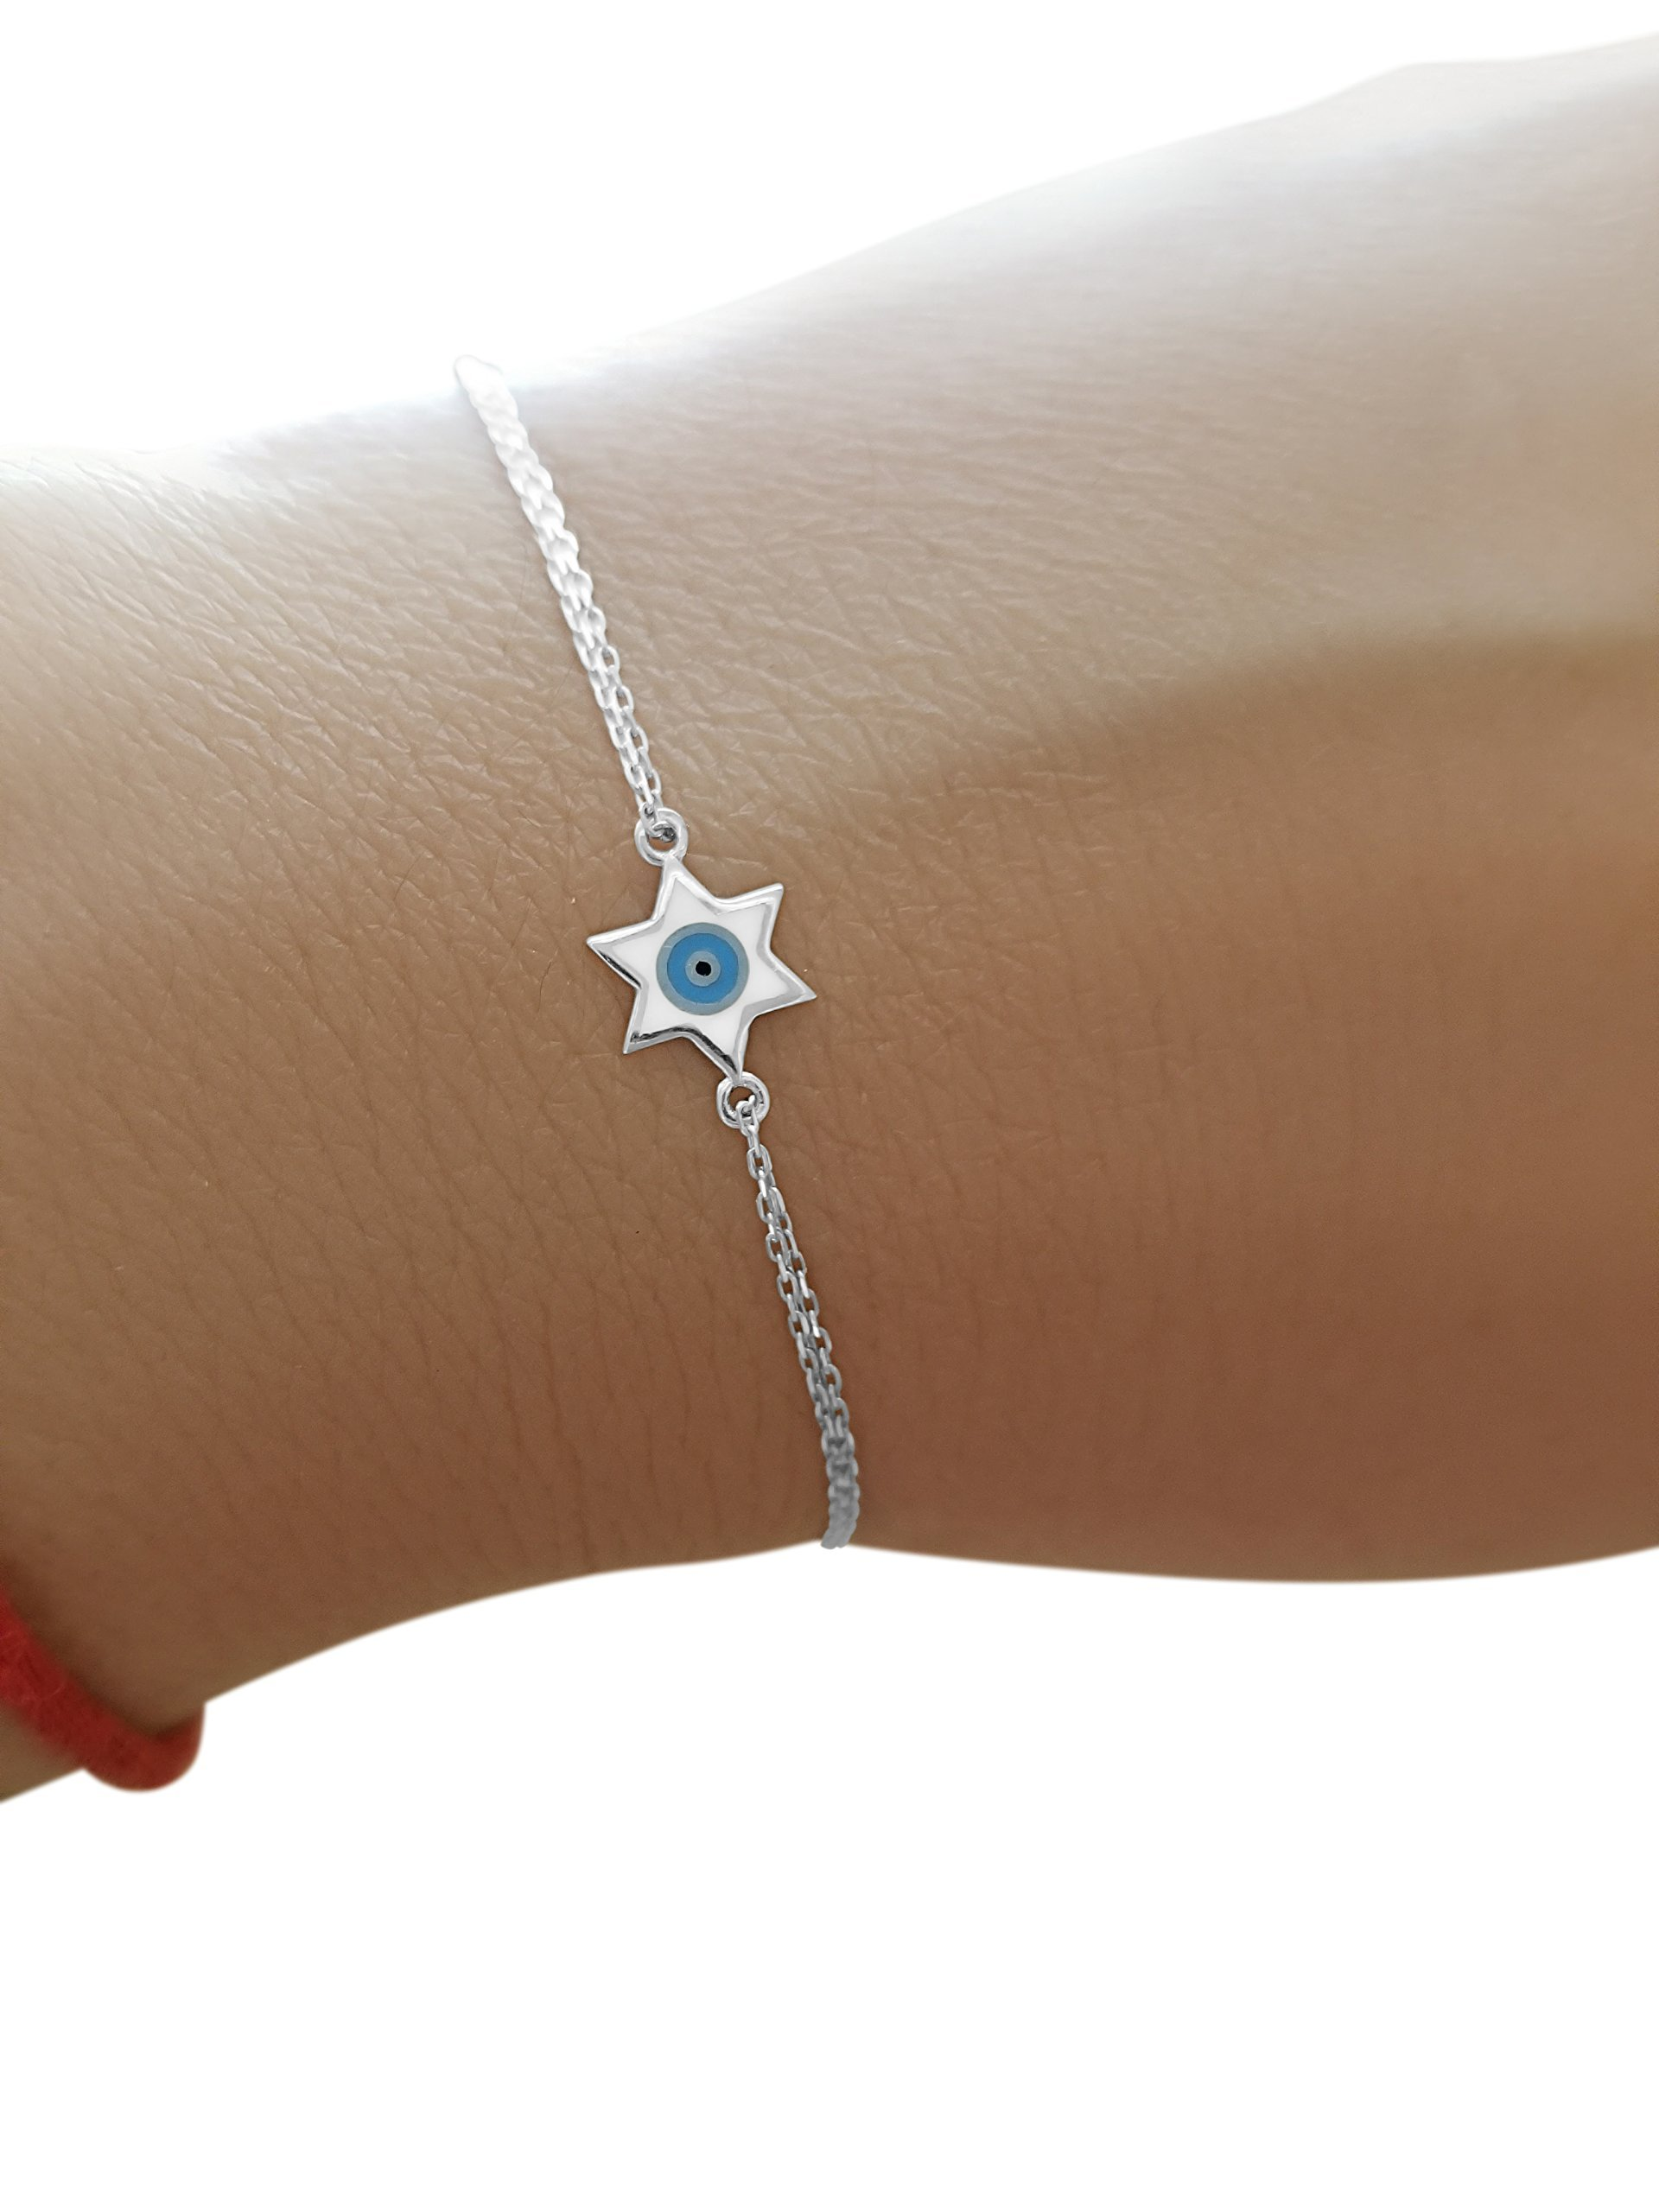 Sterling Silver Jewish Star and Evil Eye Bracelet To Guide You + Add Style + Beauty | Alef Bet Jewelry